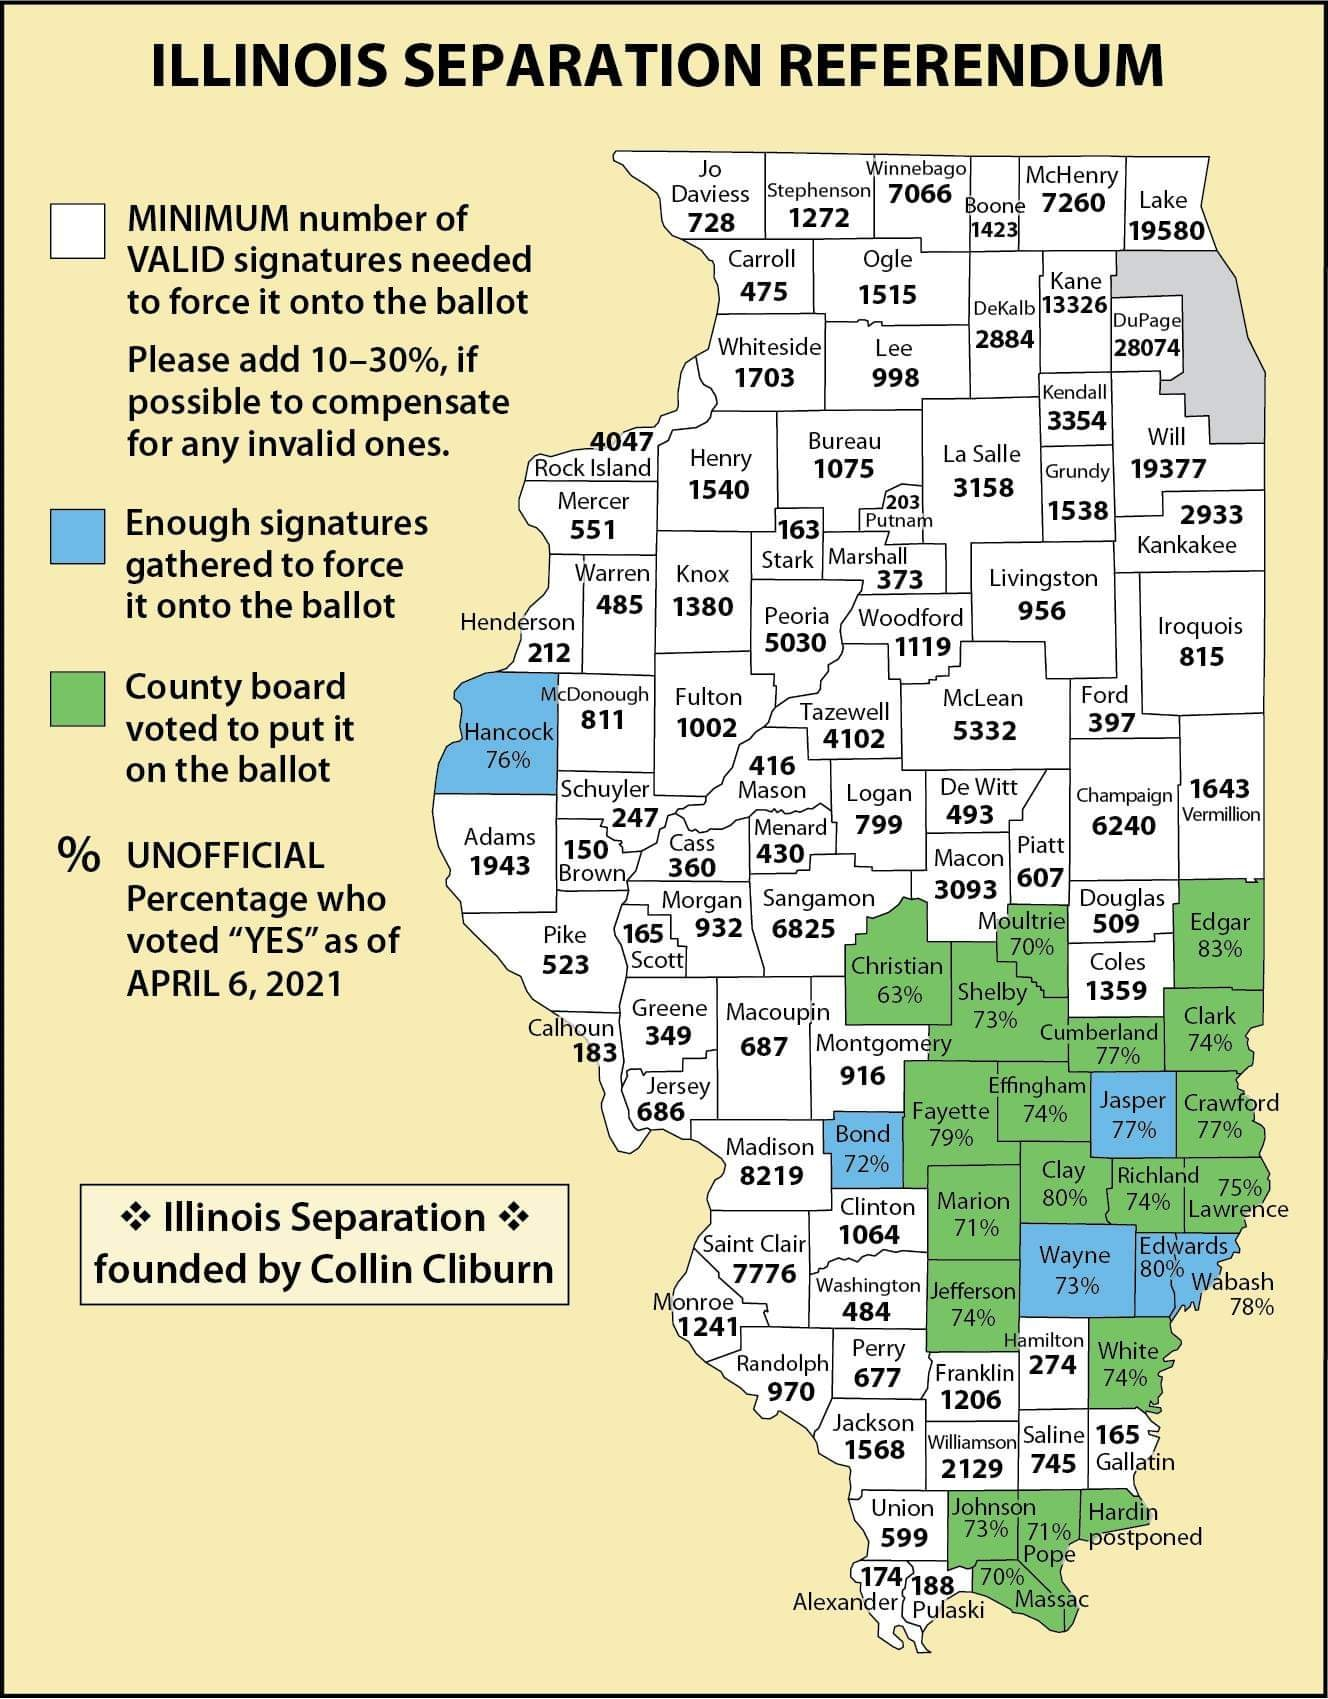 24 Illinois Counties Voted to Separate from Chicago